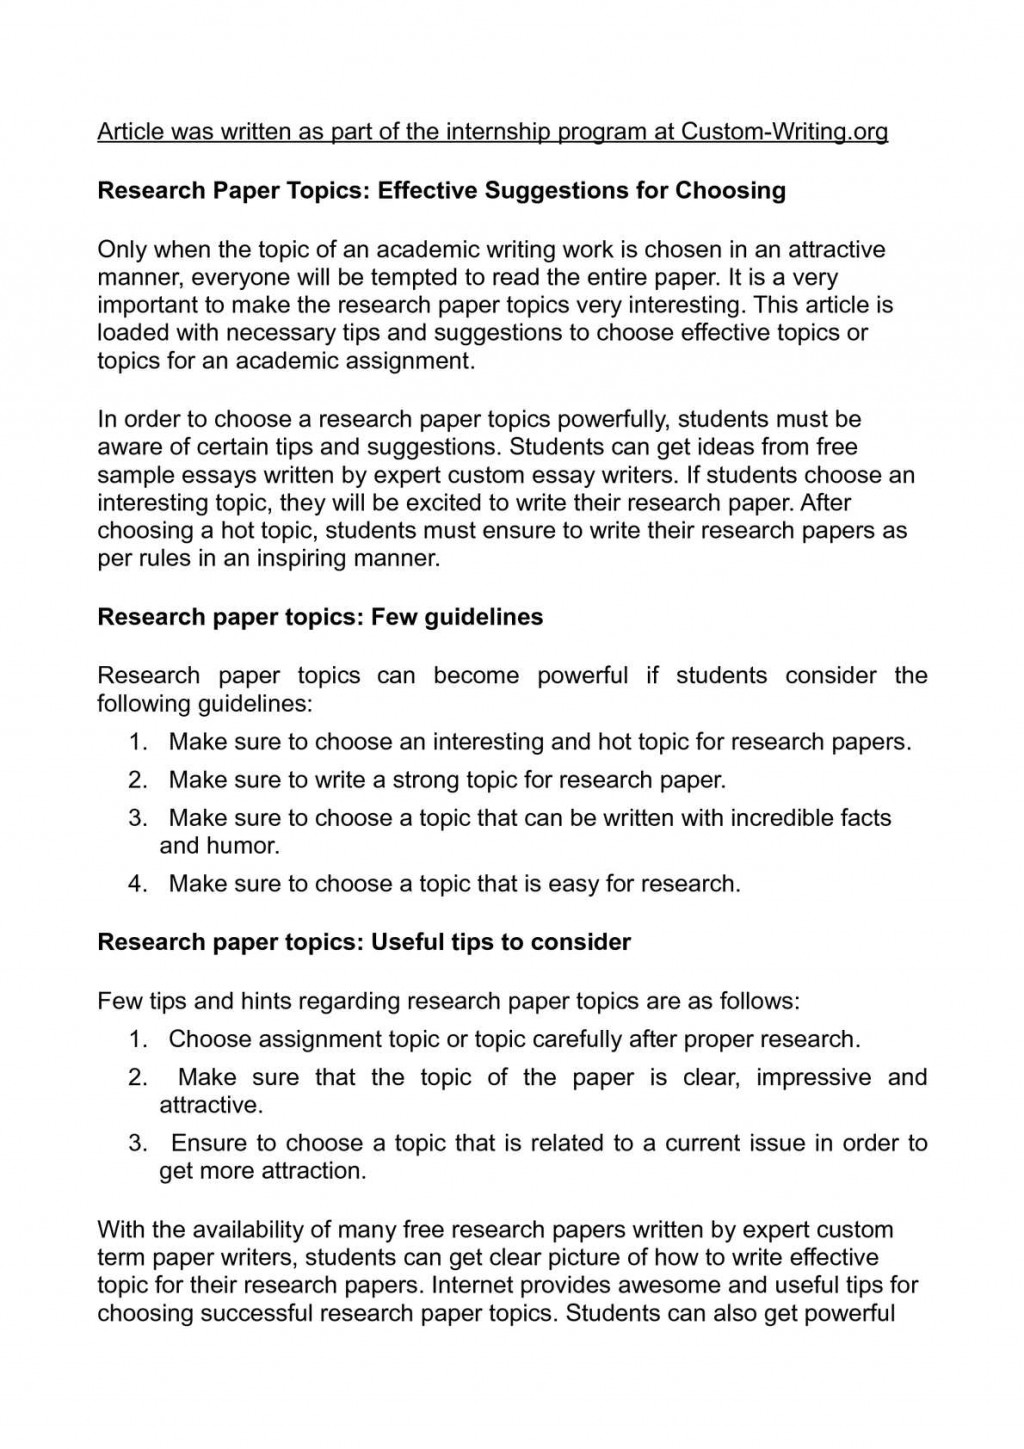 016 Easy Research Paper Topics Fantastic For High School Students Reddit To Write About Large